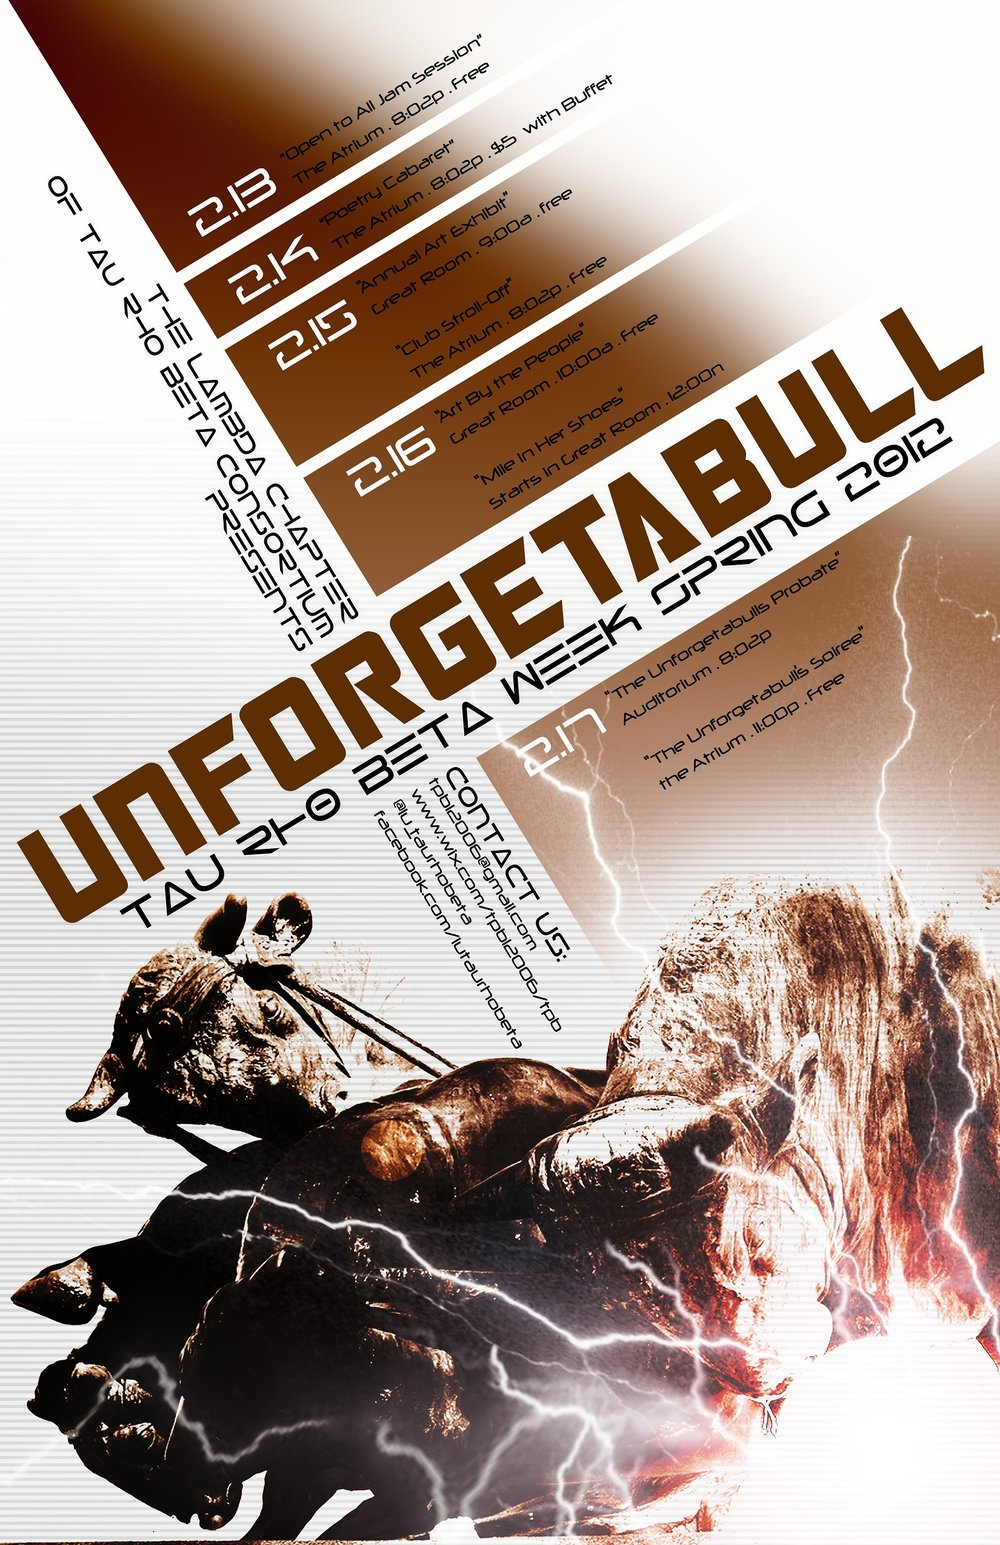 Unforgetabulls Probate Flyer 2.jpg